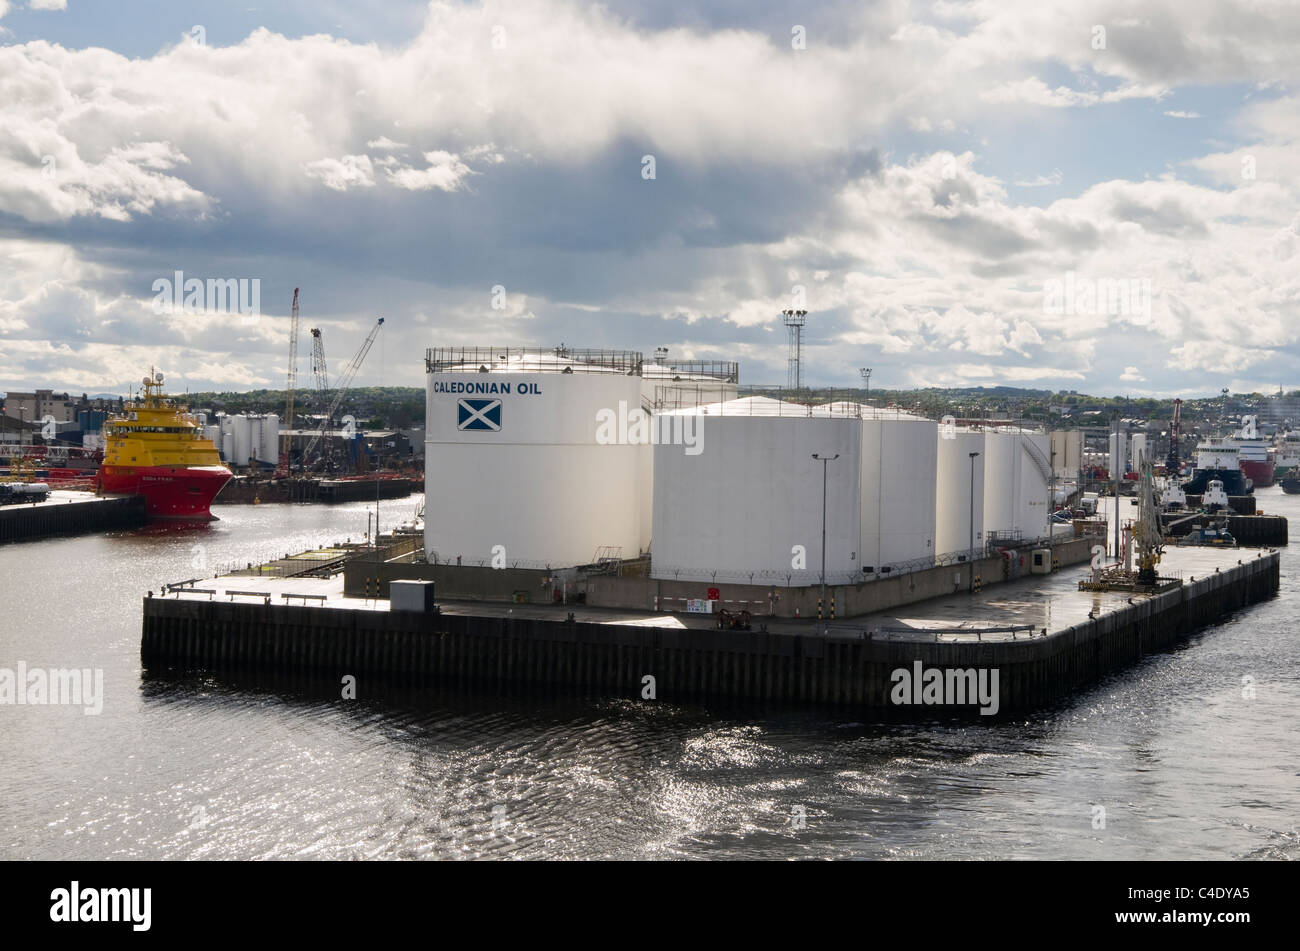 Point Law, Aberdeen, Aberdeenshire, Scotland, UK. Caledonian Oil storage tanks for fuel from offshore North Sea - Stock Image